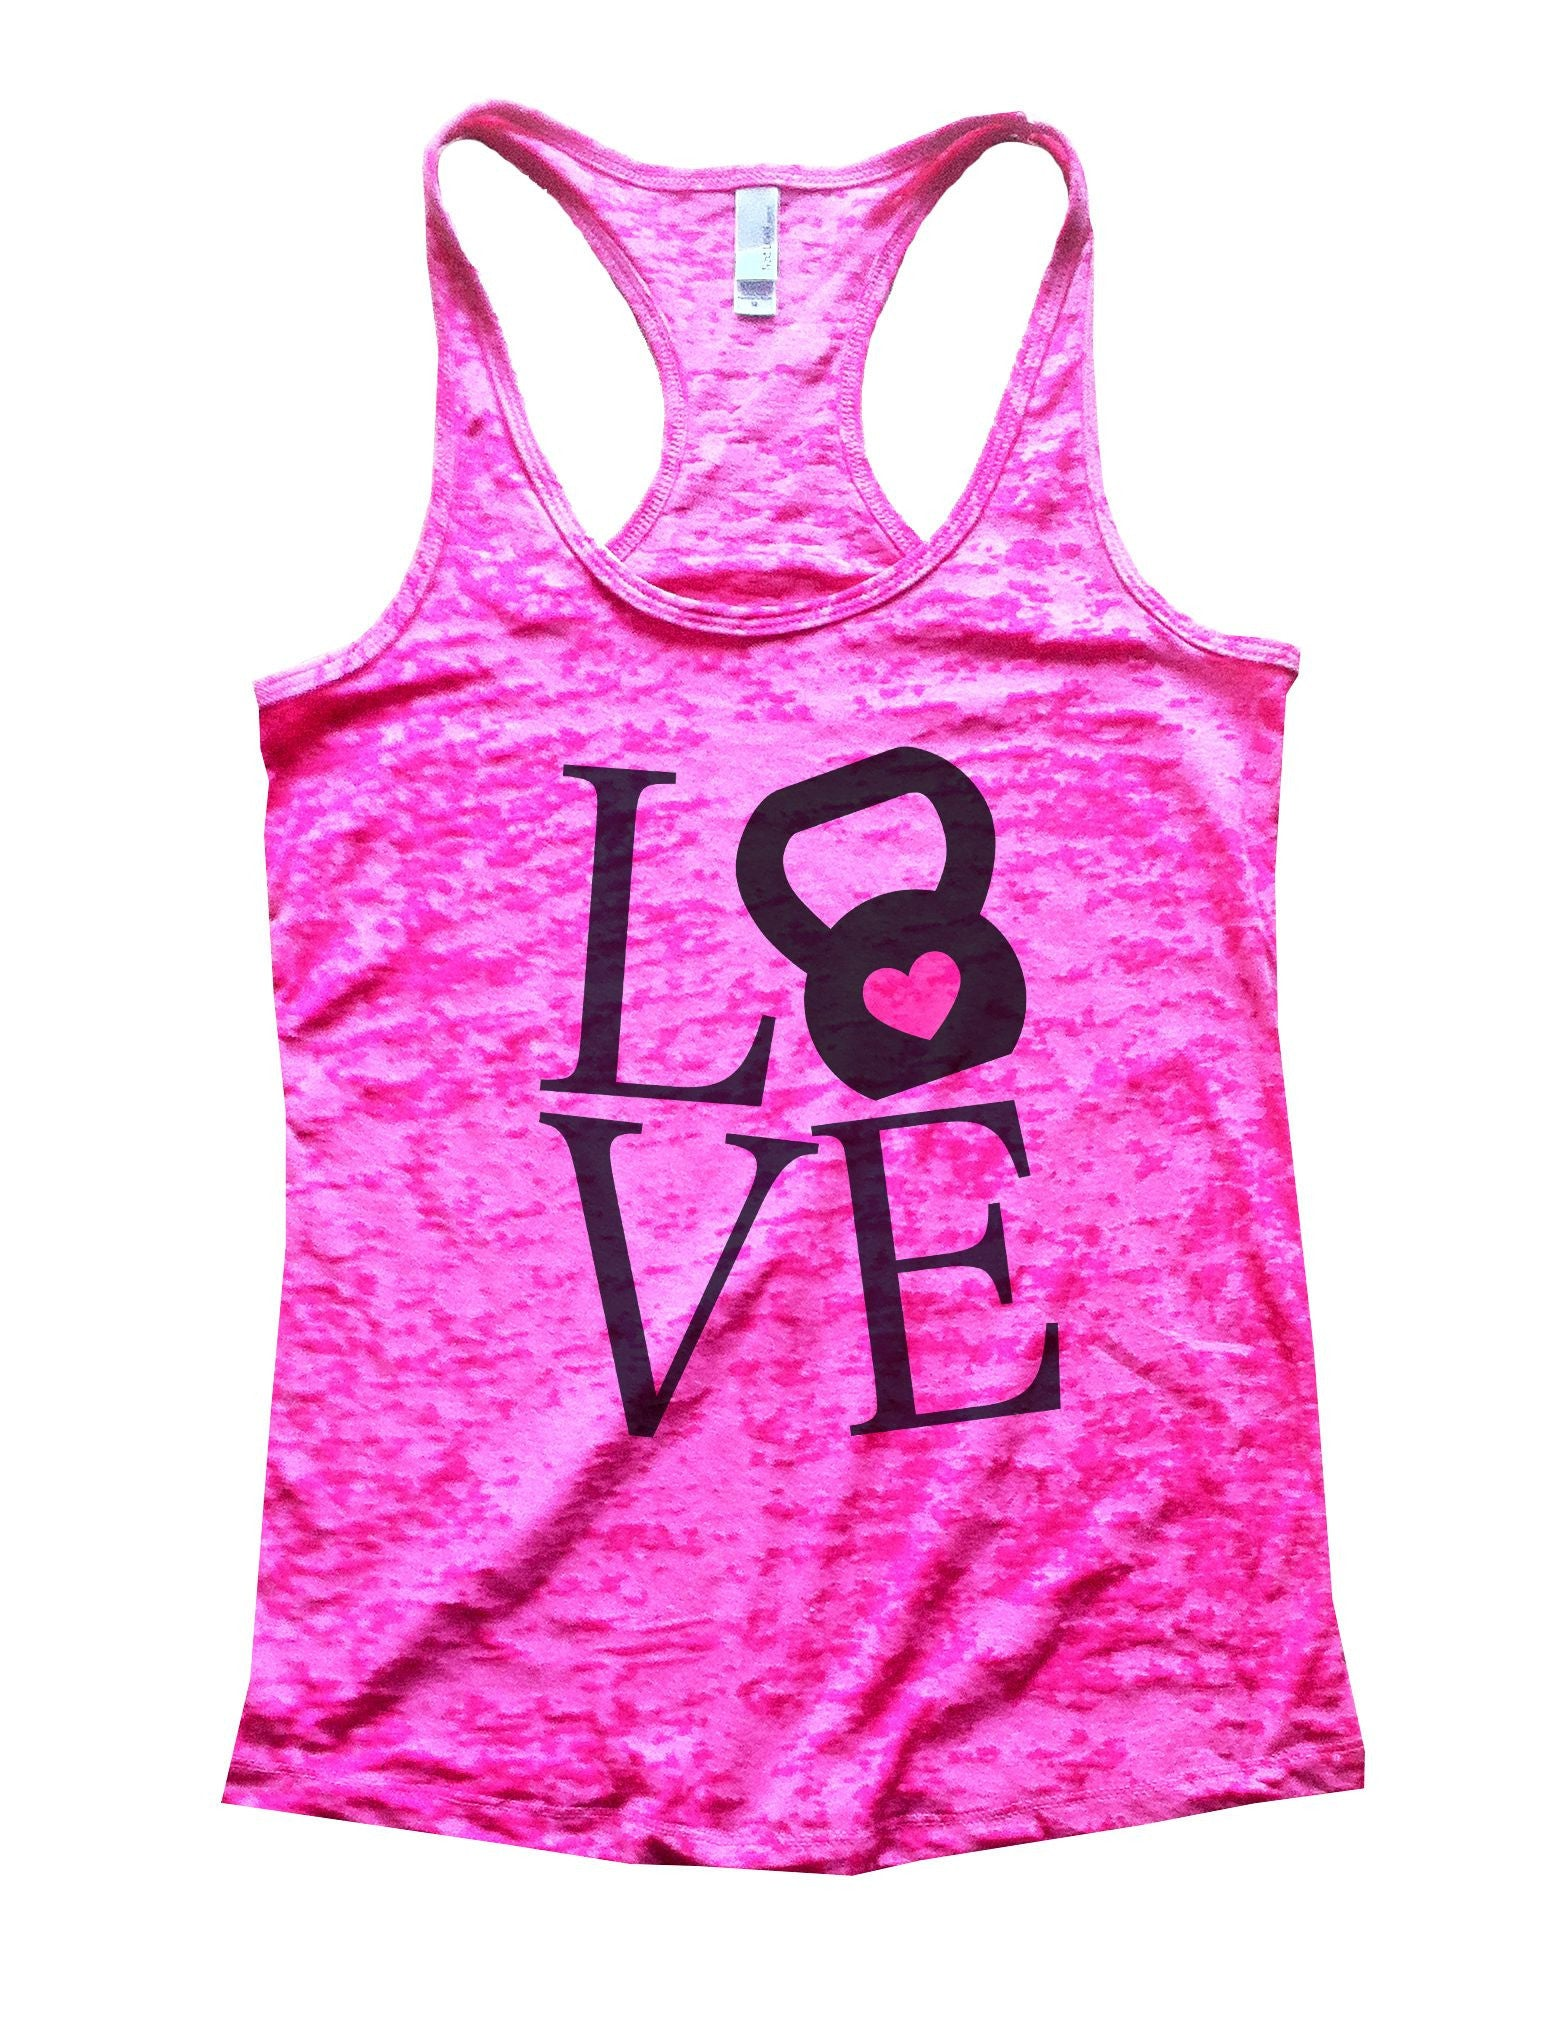 Love Burnout Tank Top By BurnoutTankTops.com - 727 - Funny Shirts Tank Tops Burnouts and Triblends  - 3